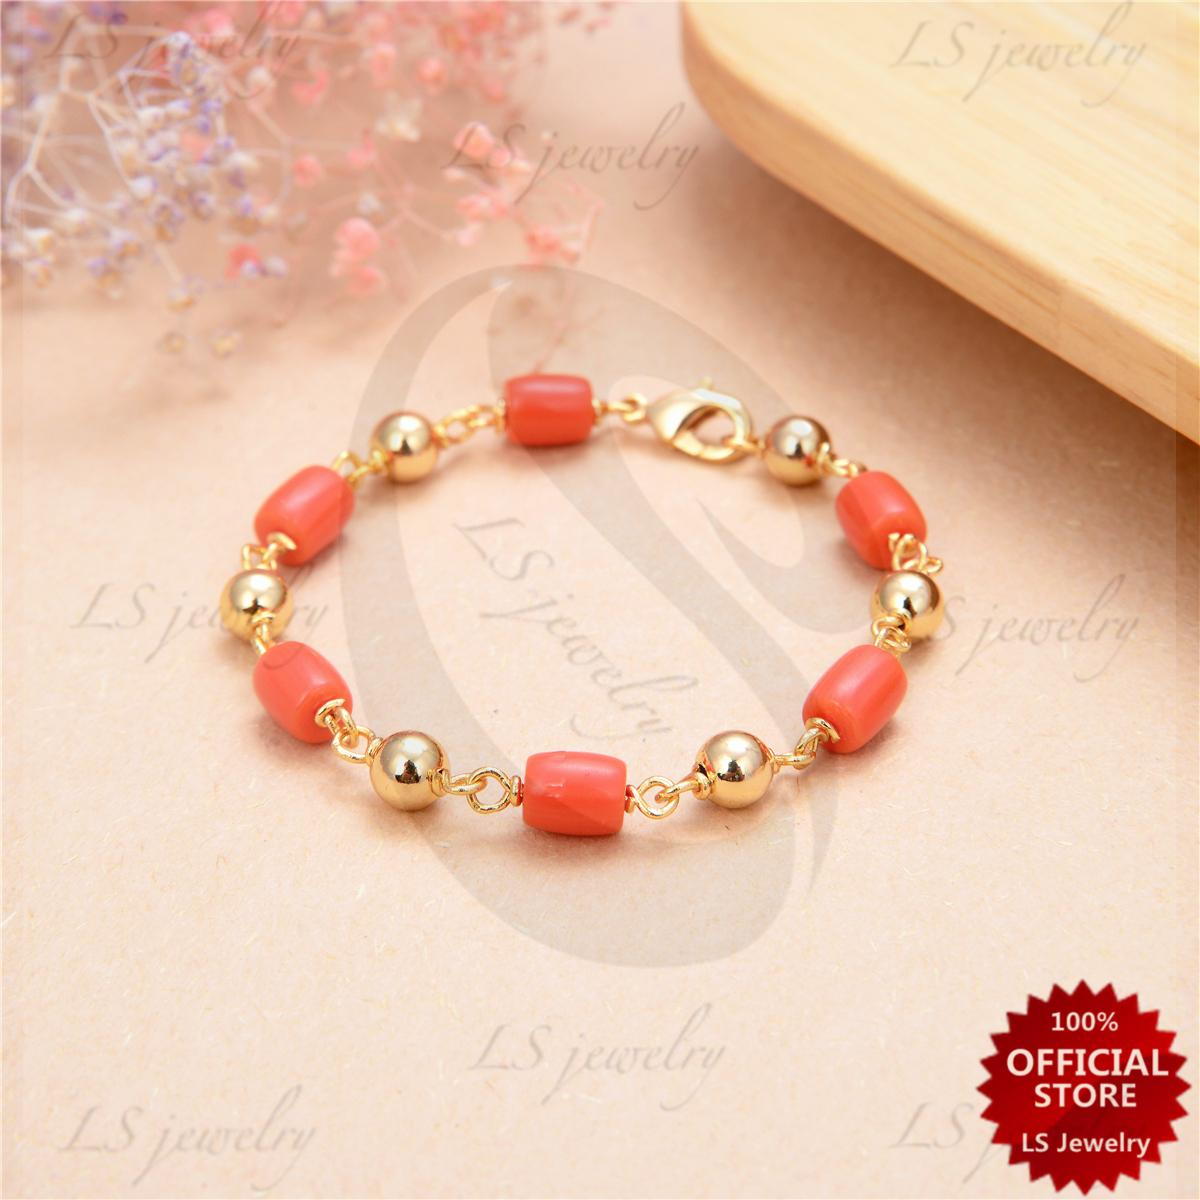 Kids Jewelry For Sale Childrens Jewelry Online Brands Prices